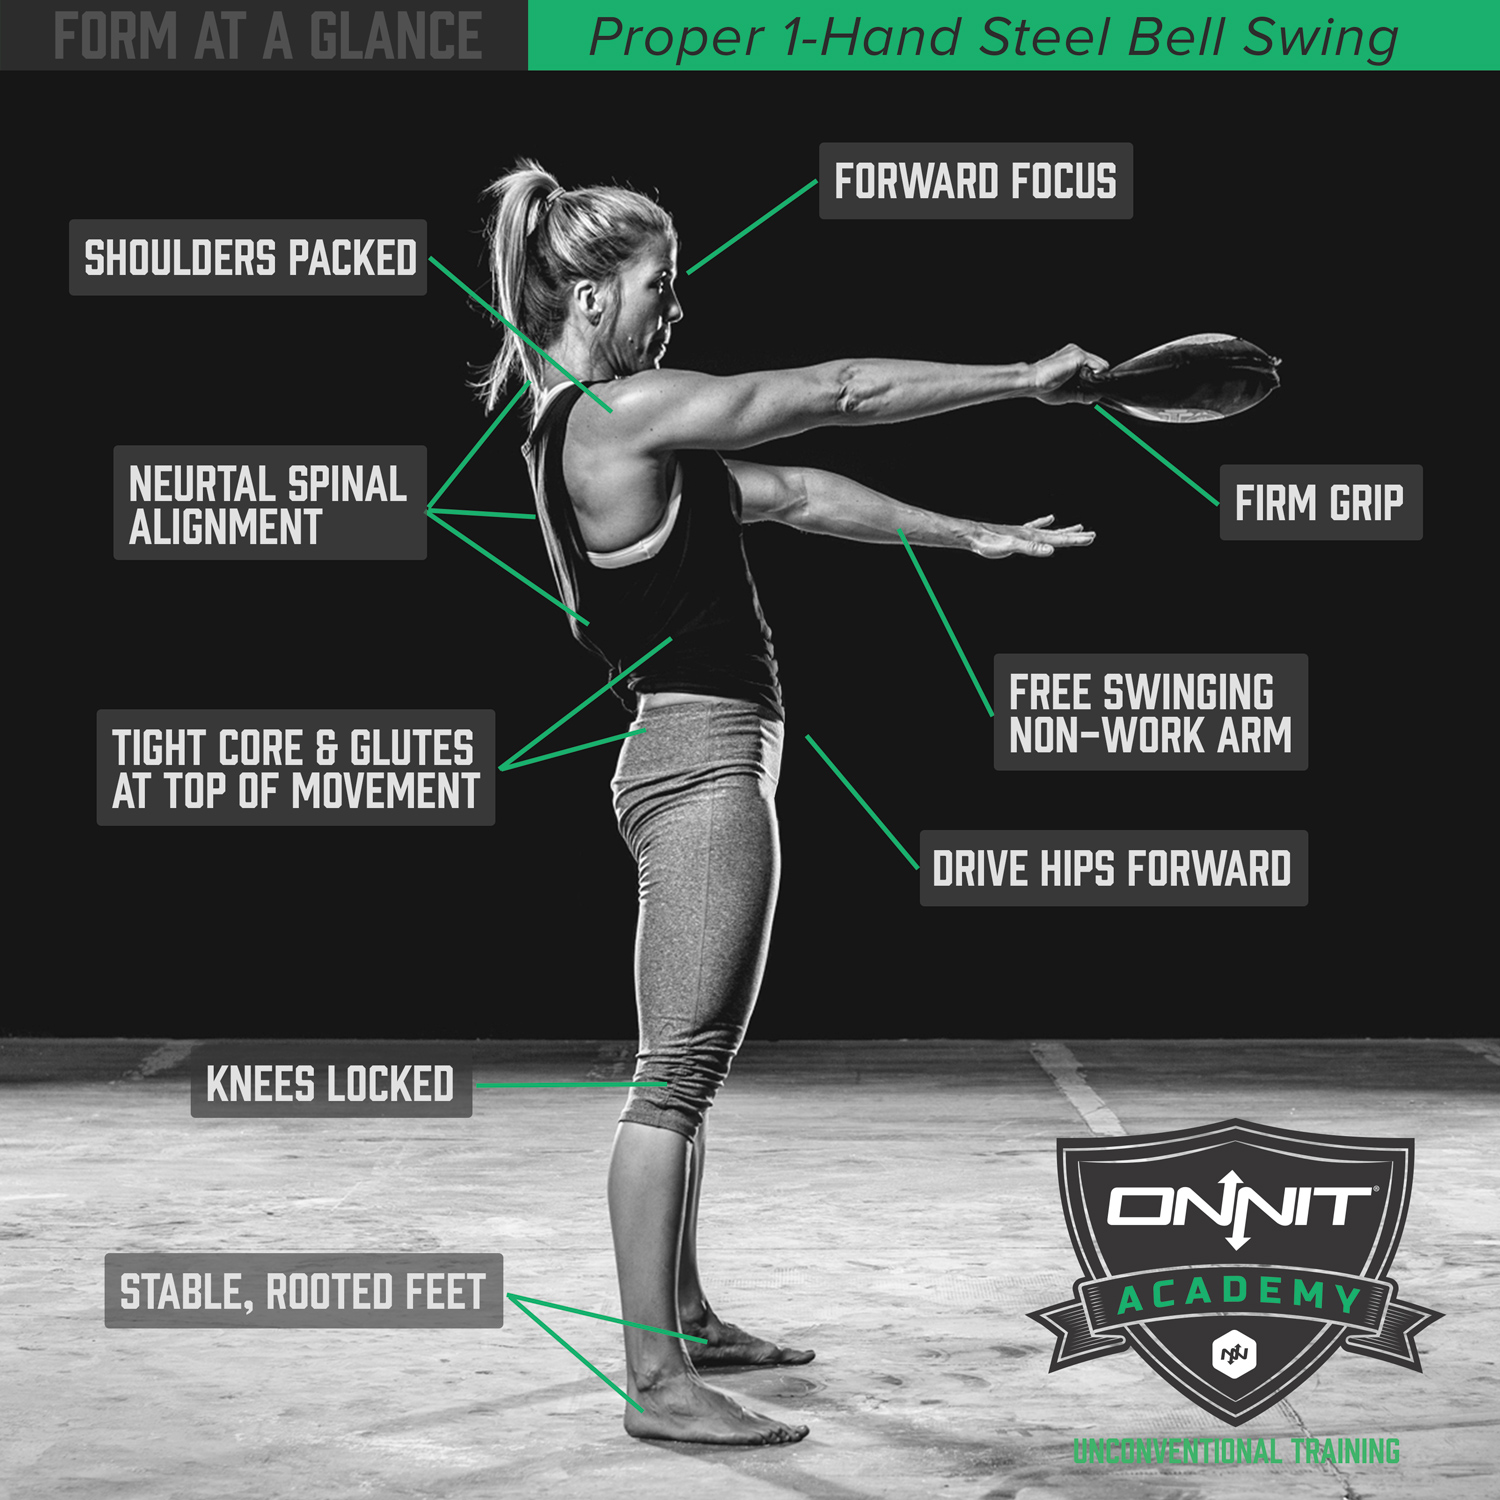 Form at a Glance 1Hand Steel Bell Swing  Onnit Academy